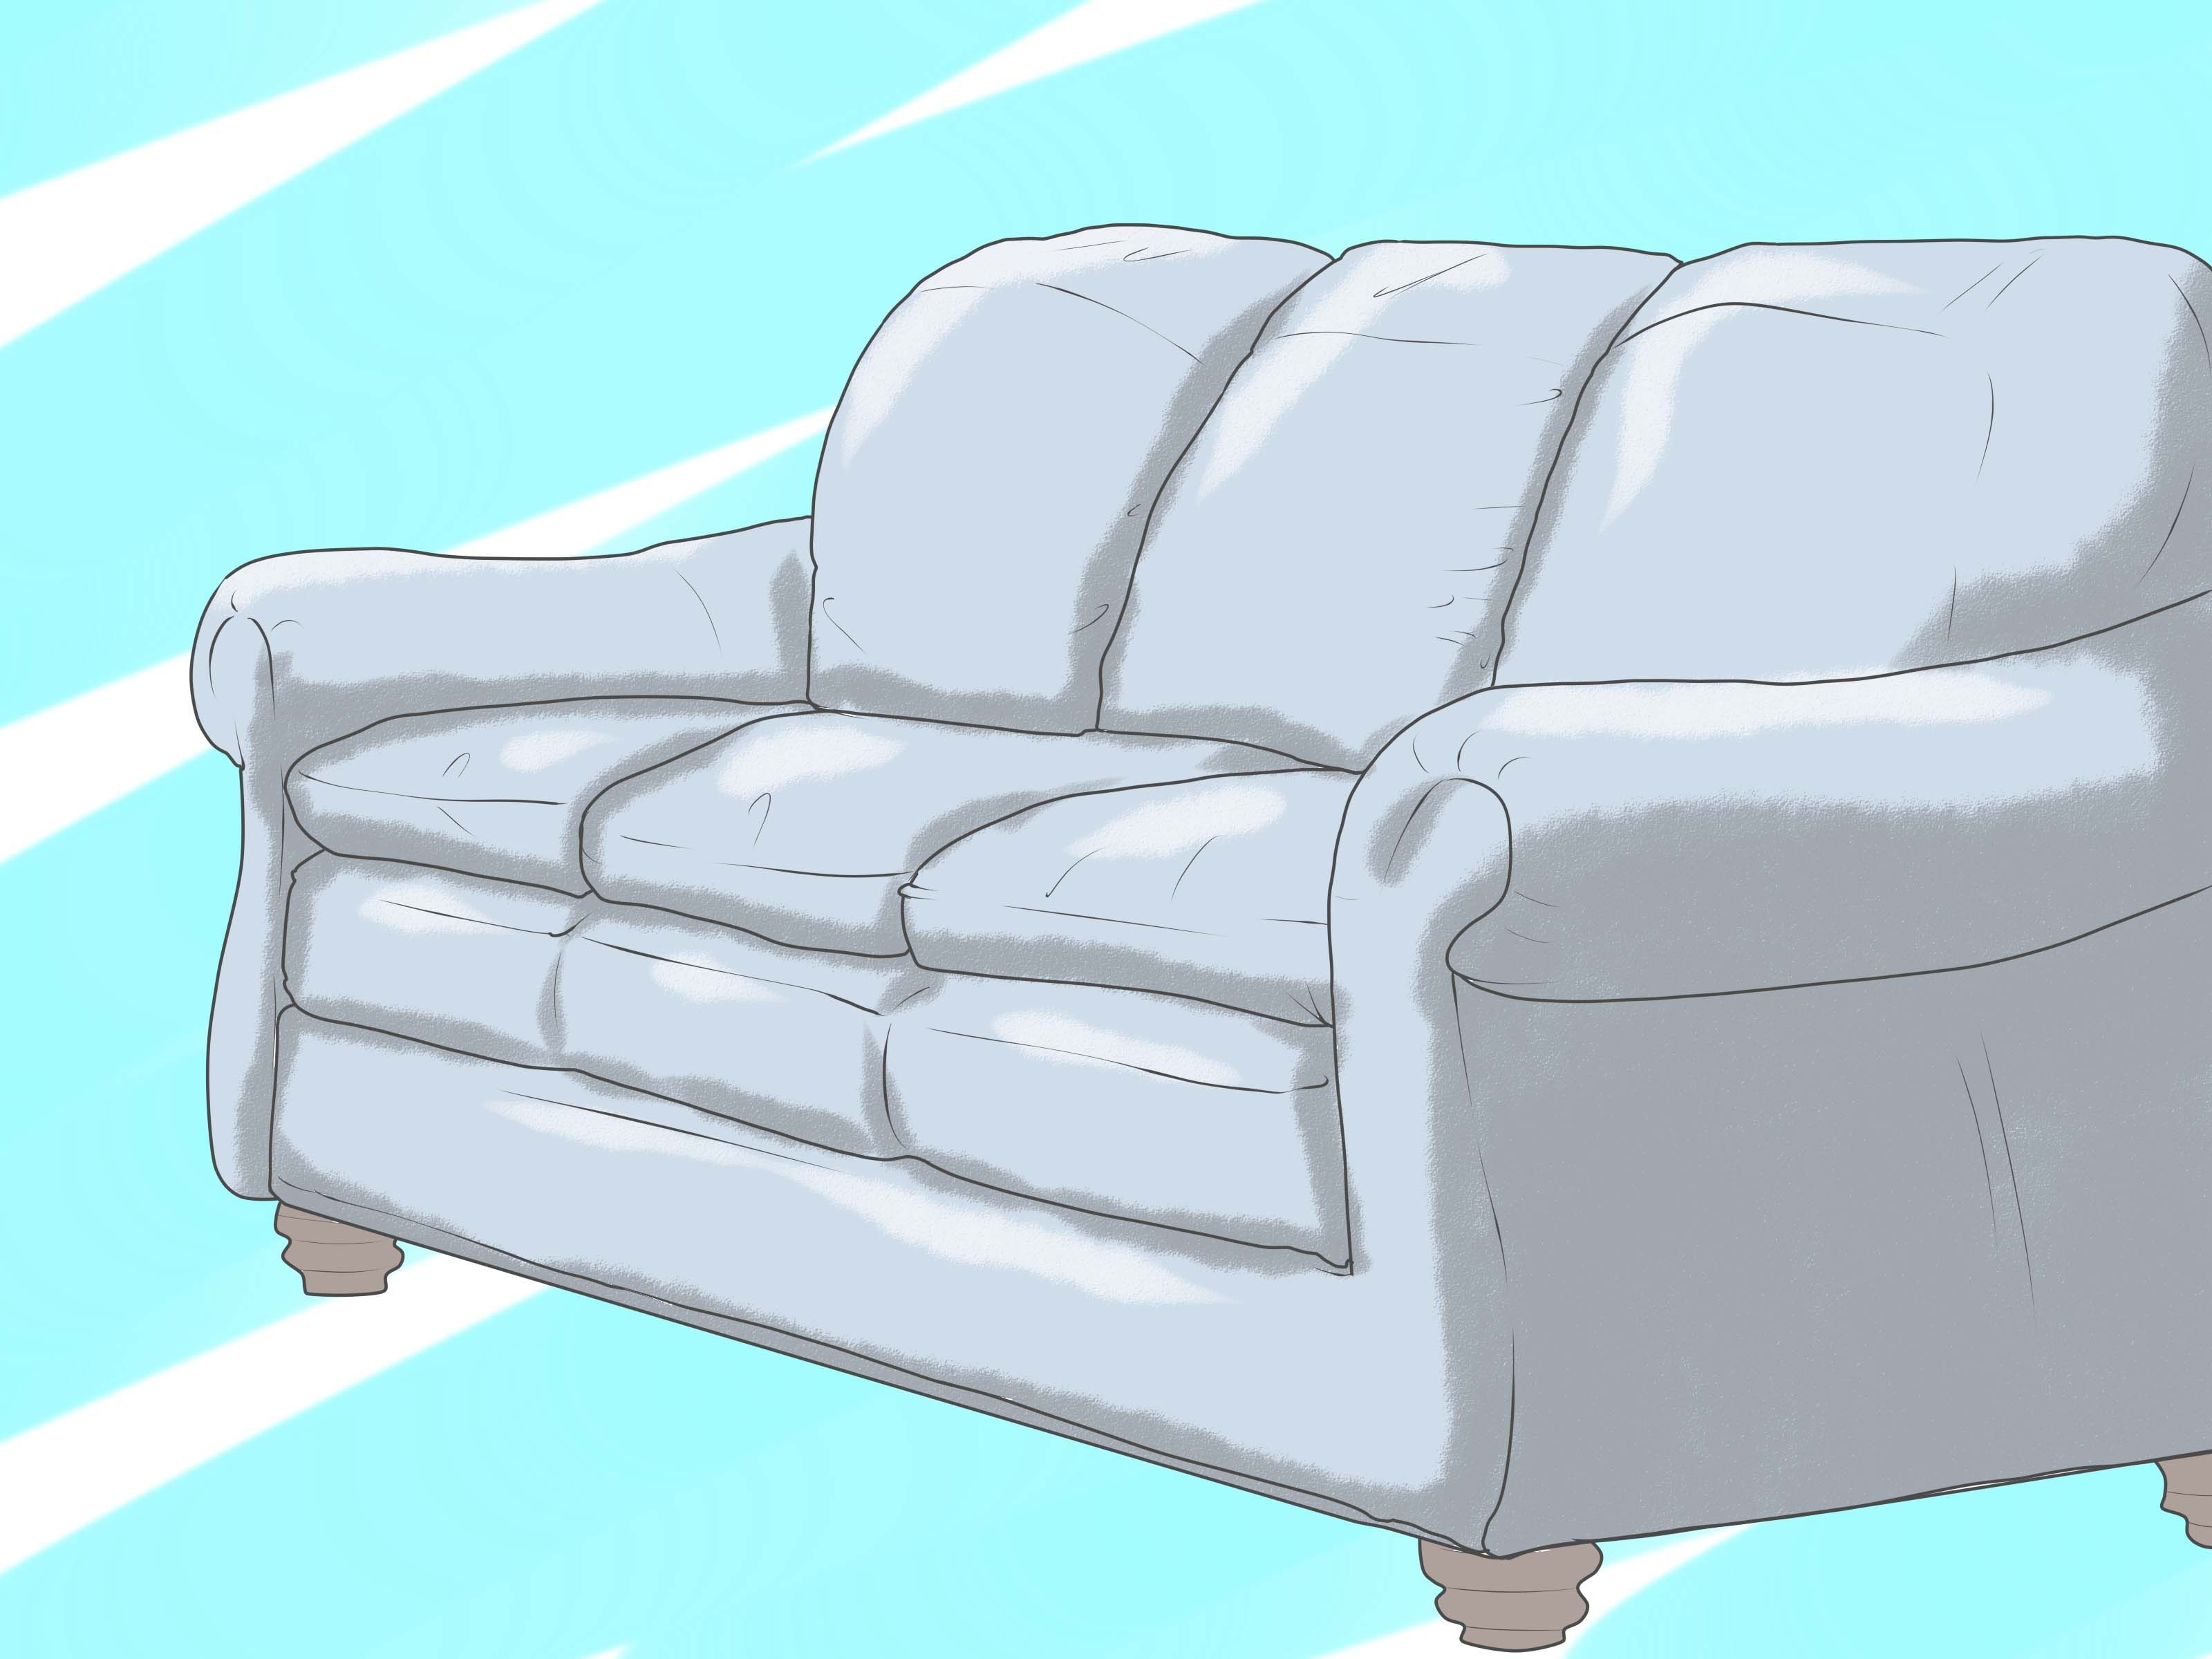 How To Clean A Leather Sofa Cleaning Leather Couch Leather Furniture Leather Couch